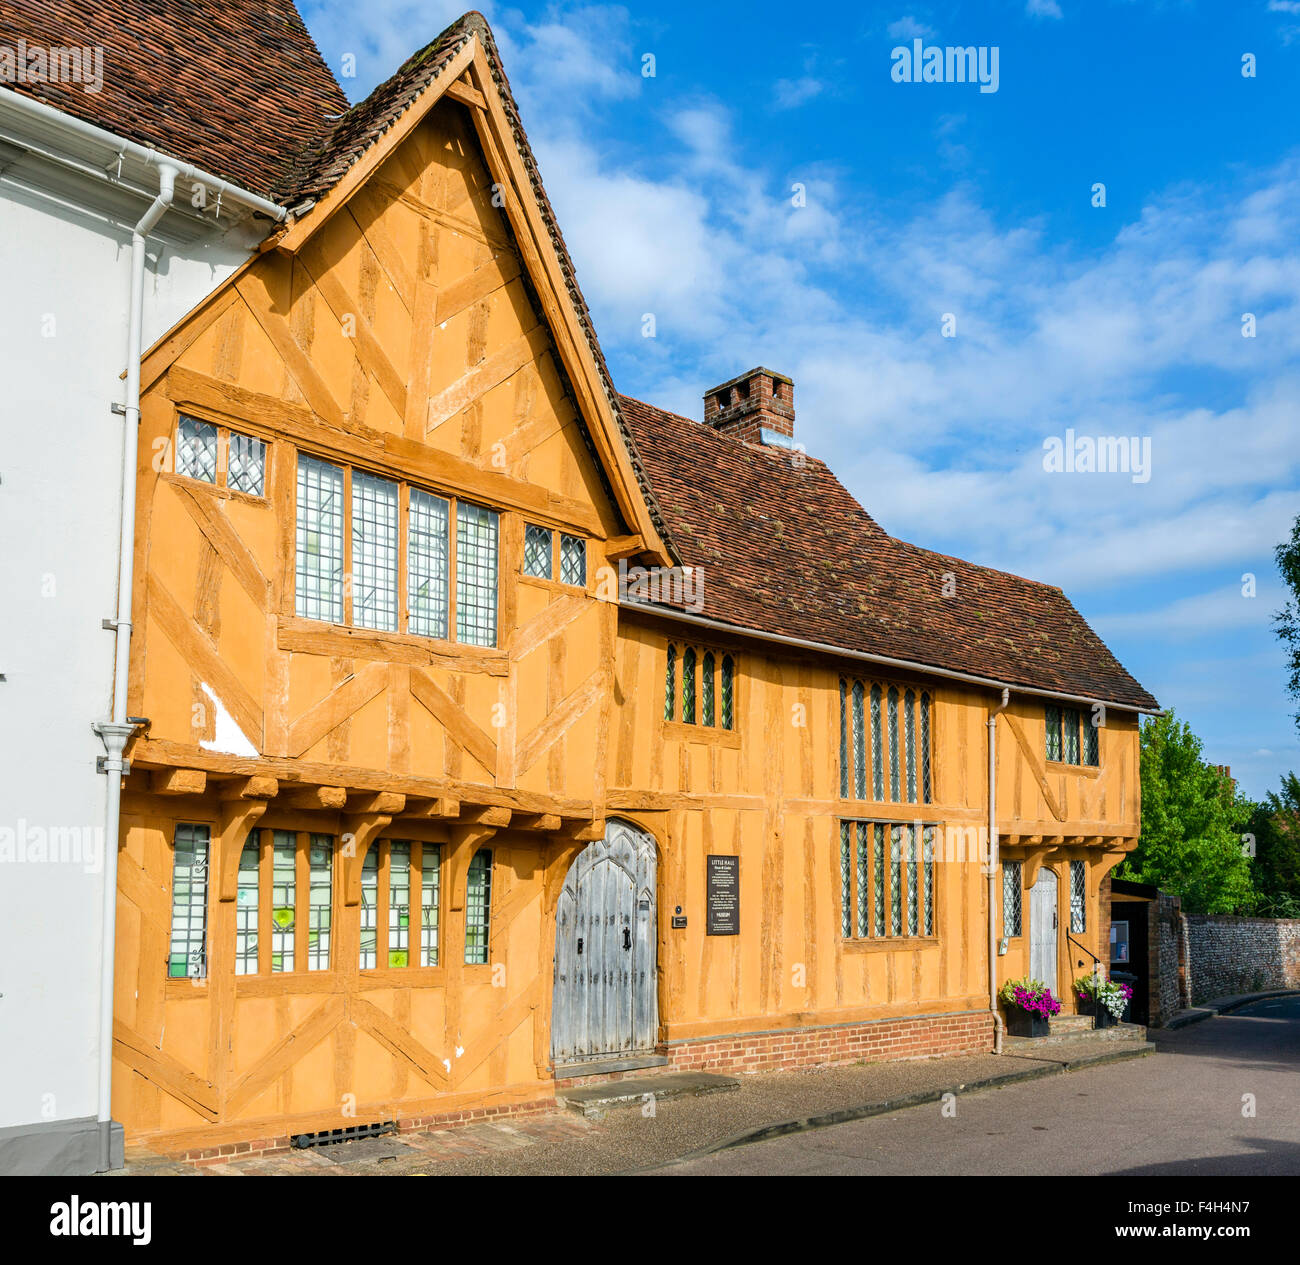 Little Hall, a medieval wool merchant's house in the village centre, Lavenham, Suffolk, England, UK - Stock Image